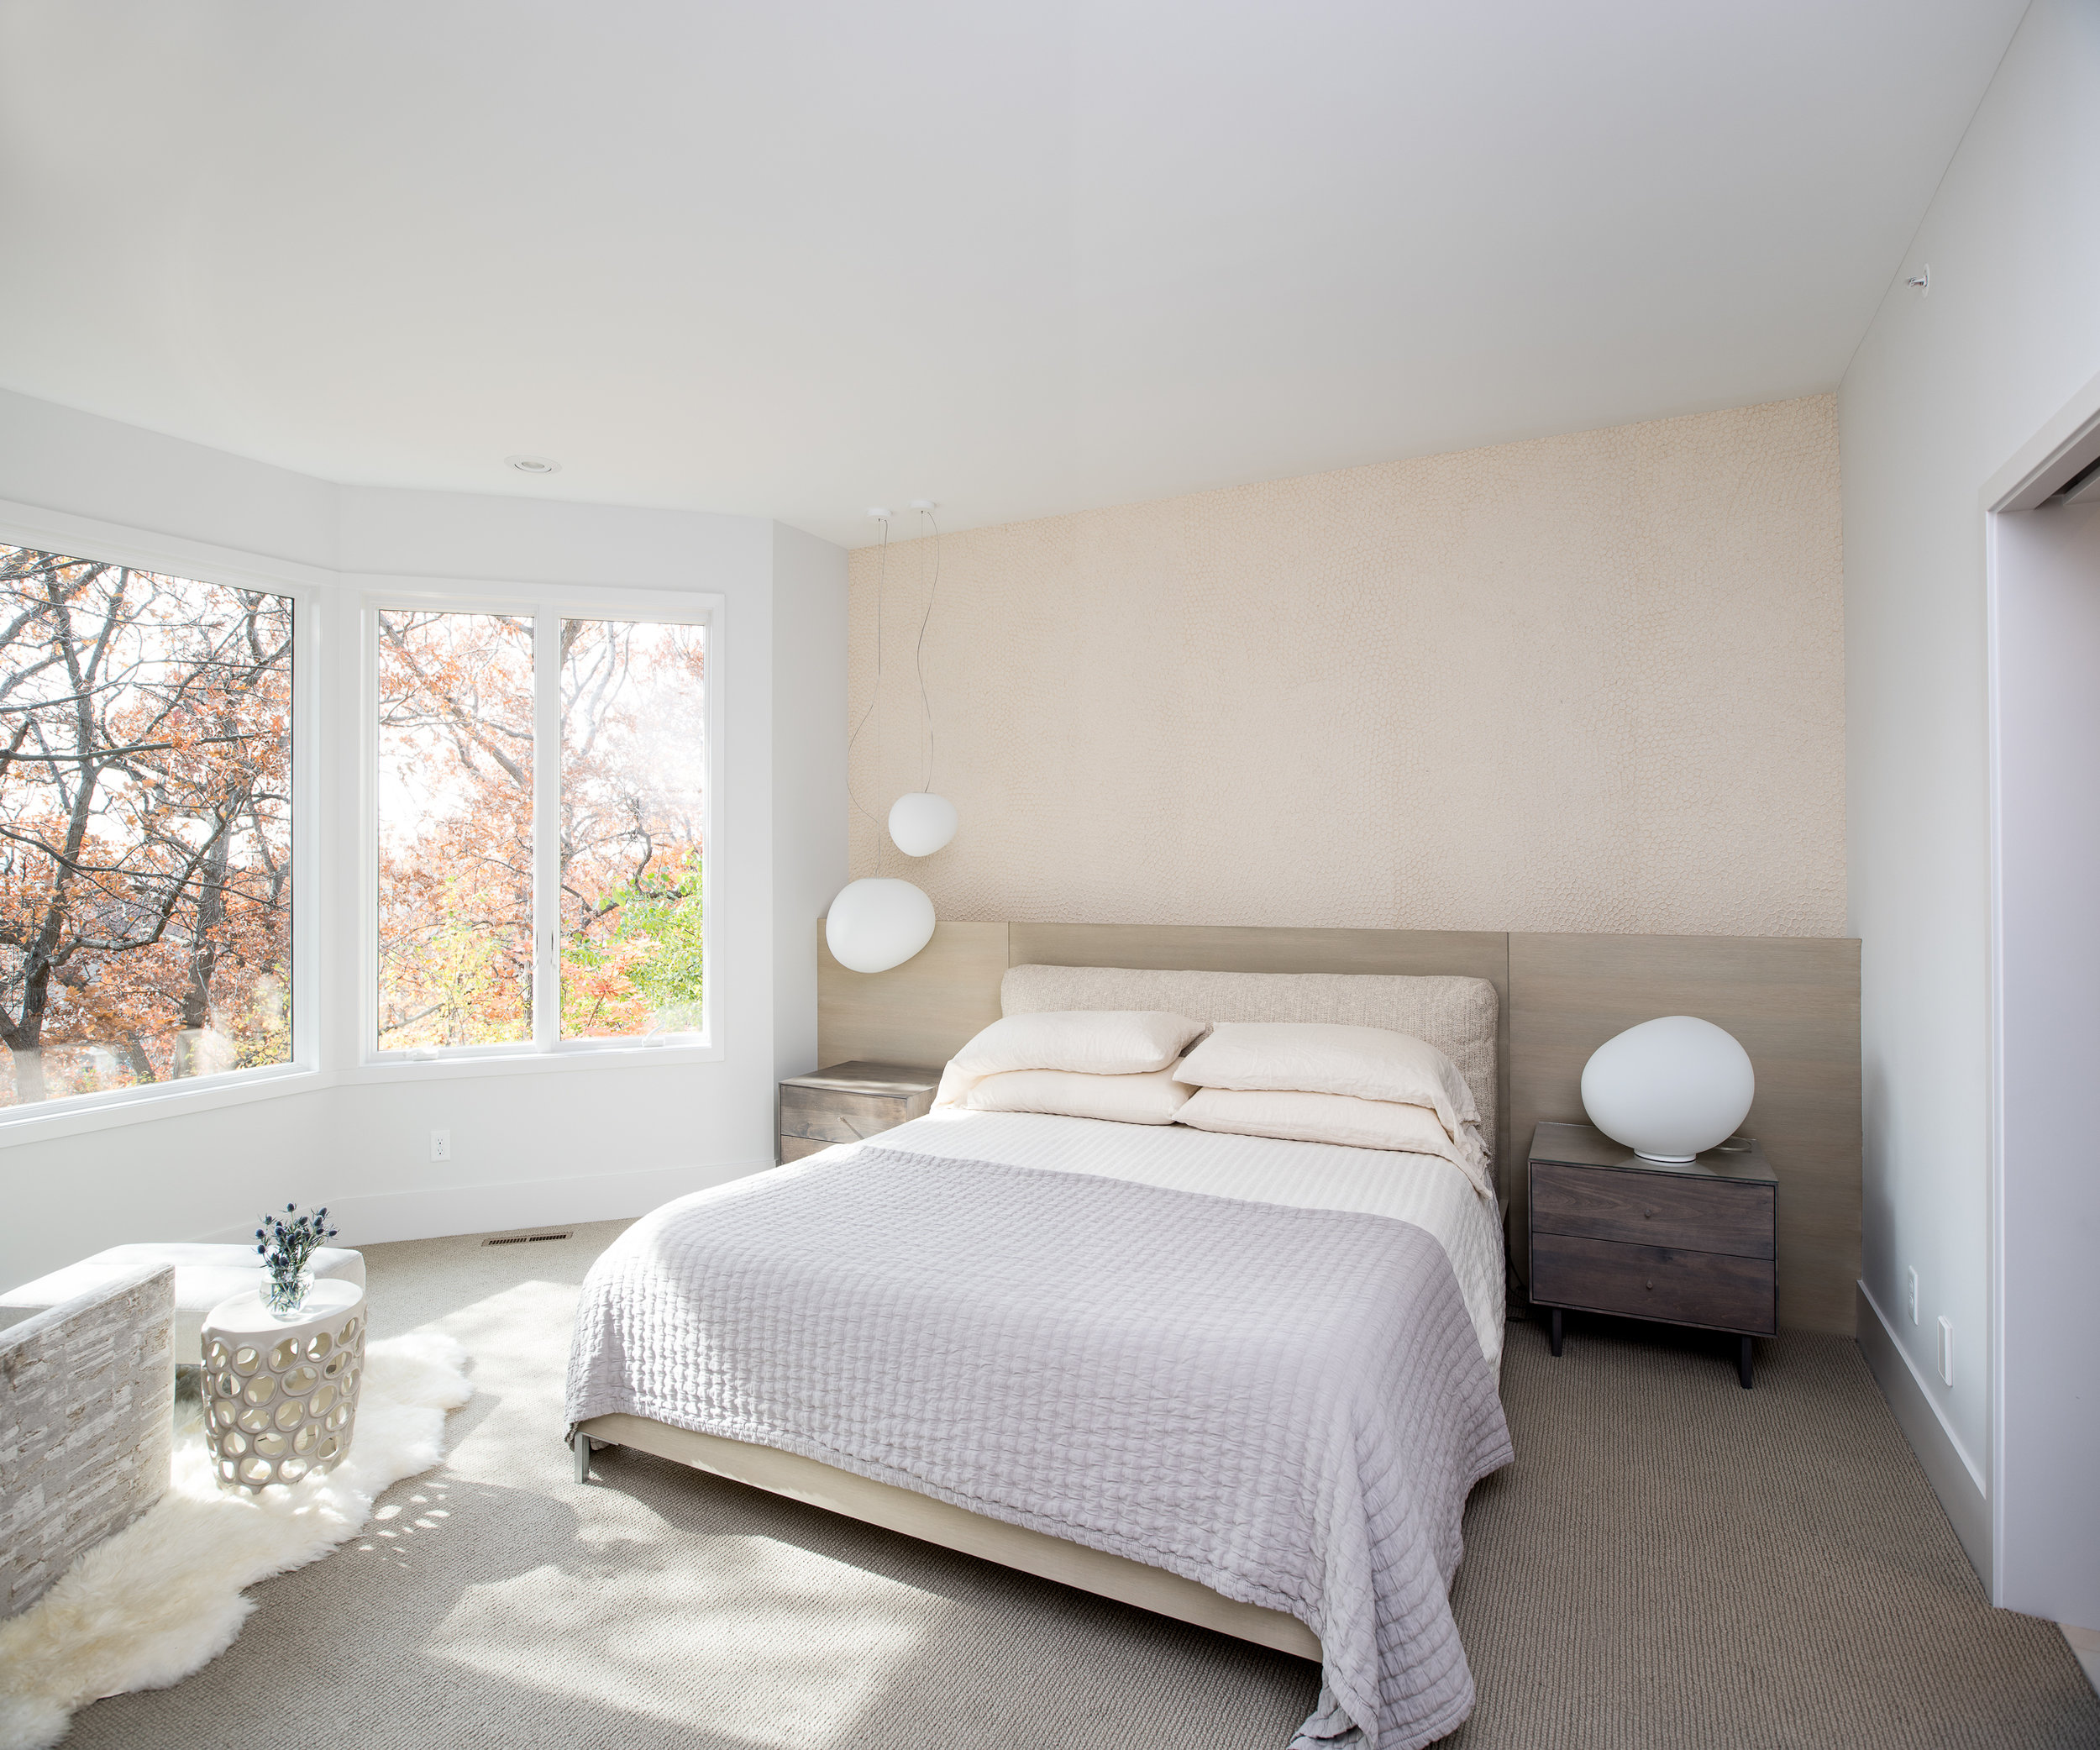 Modern master bedroom with pendants and minimal wallpaper